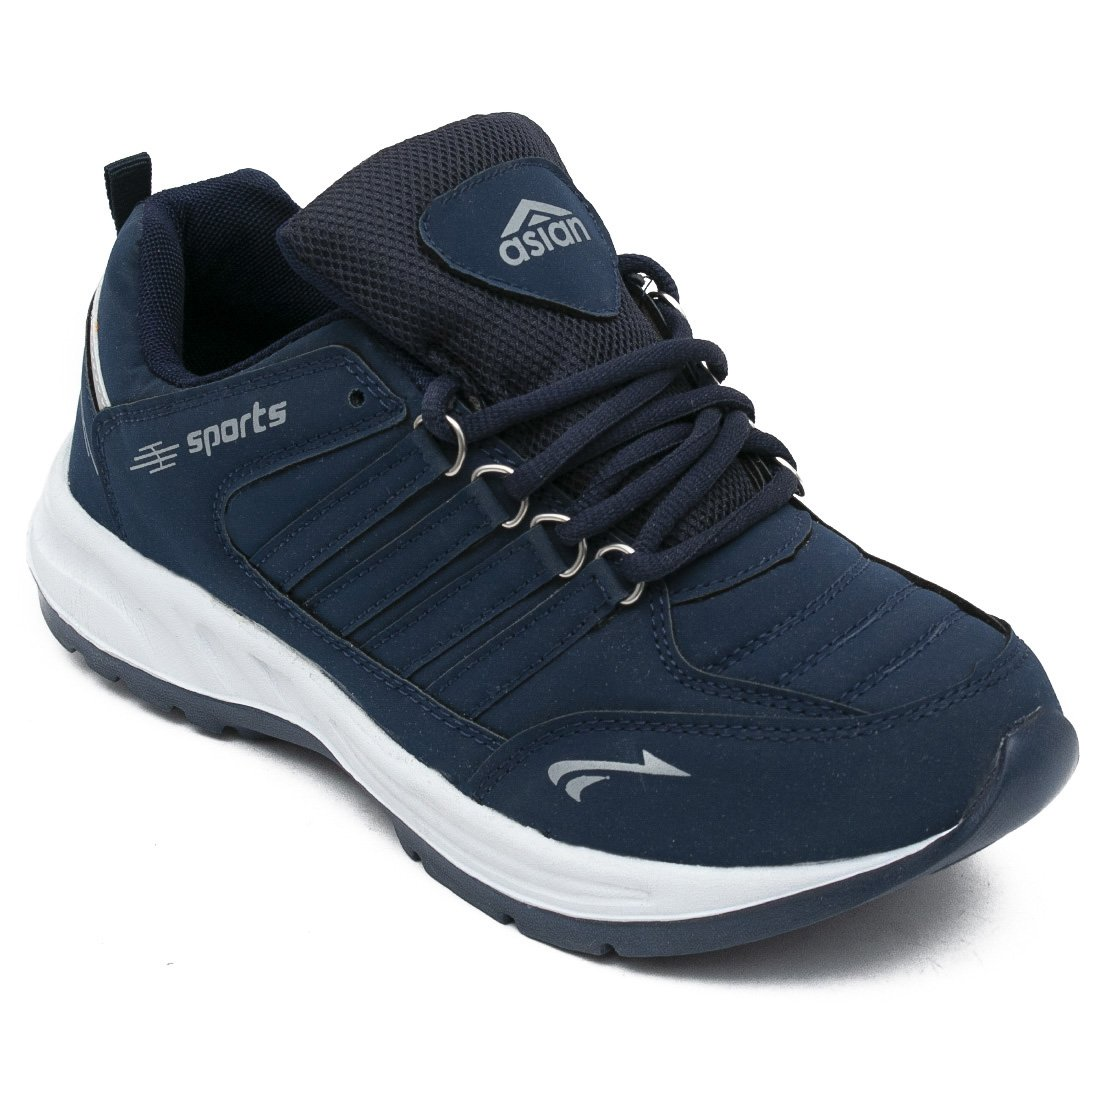 Cosco Sports Running Shoes for Men